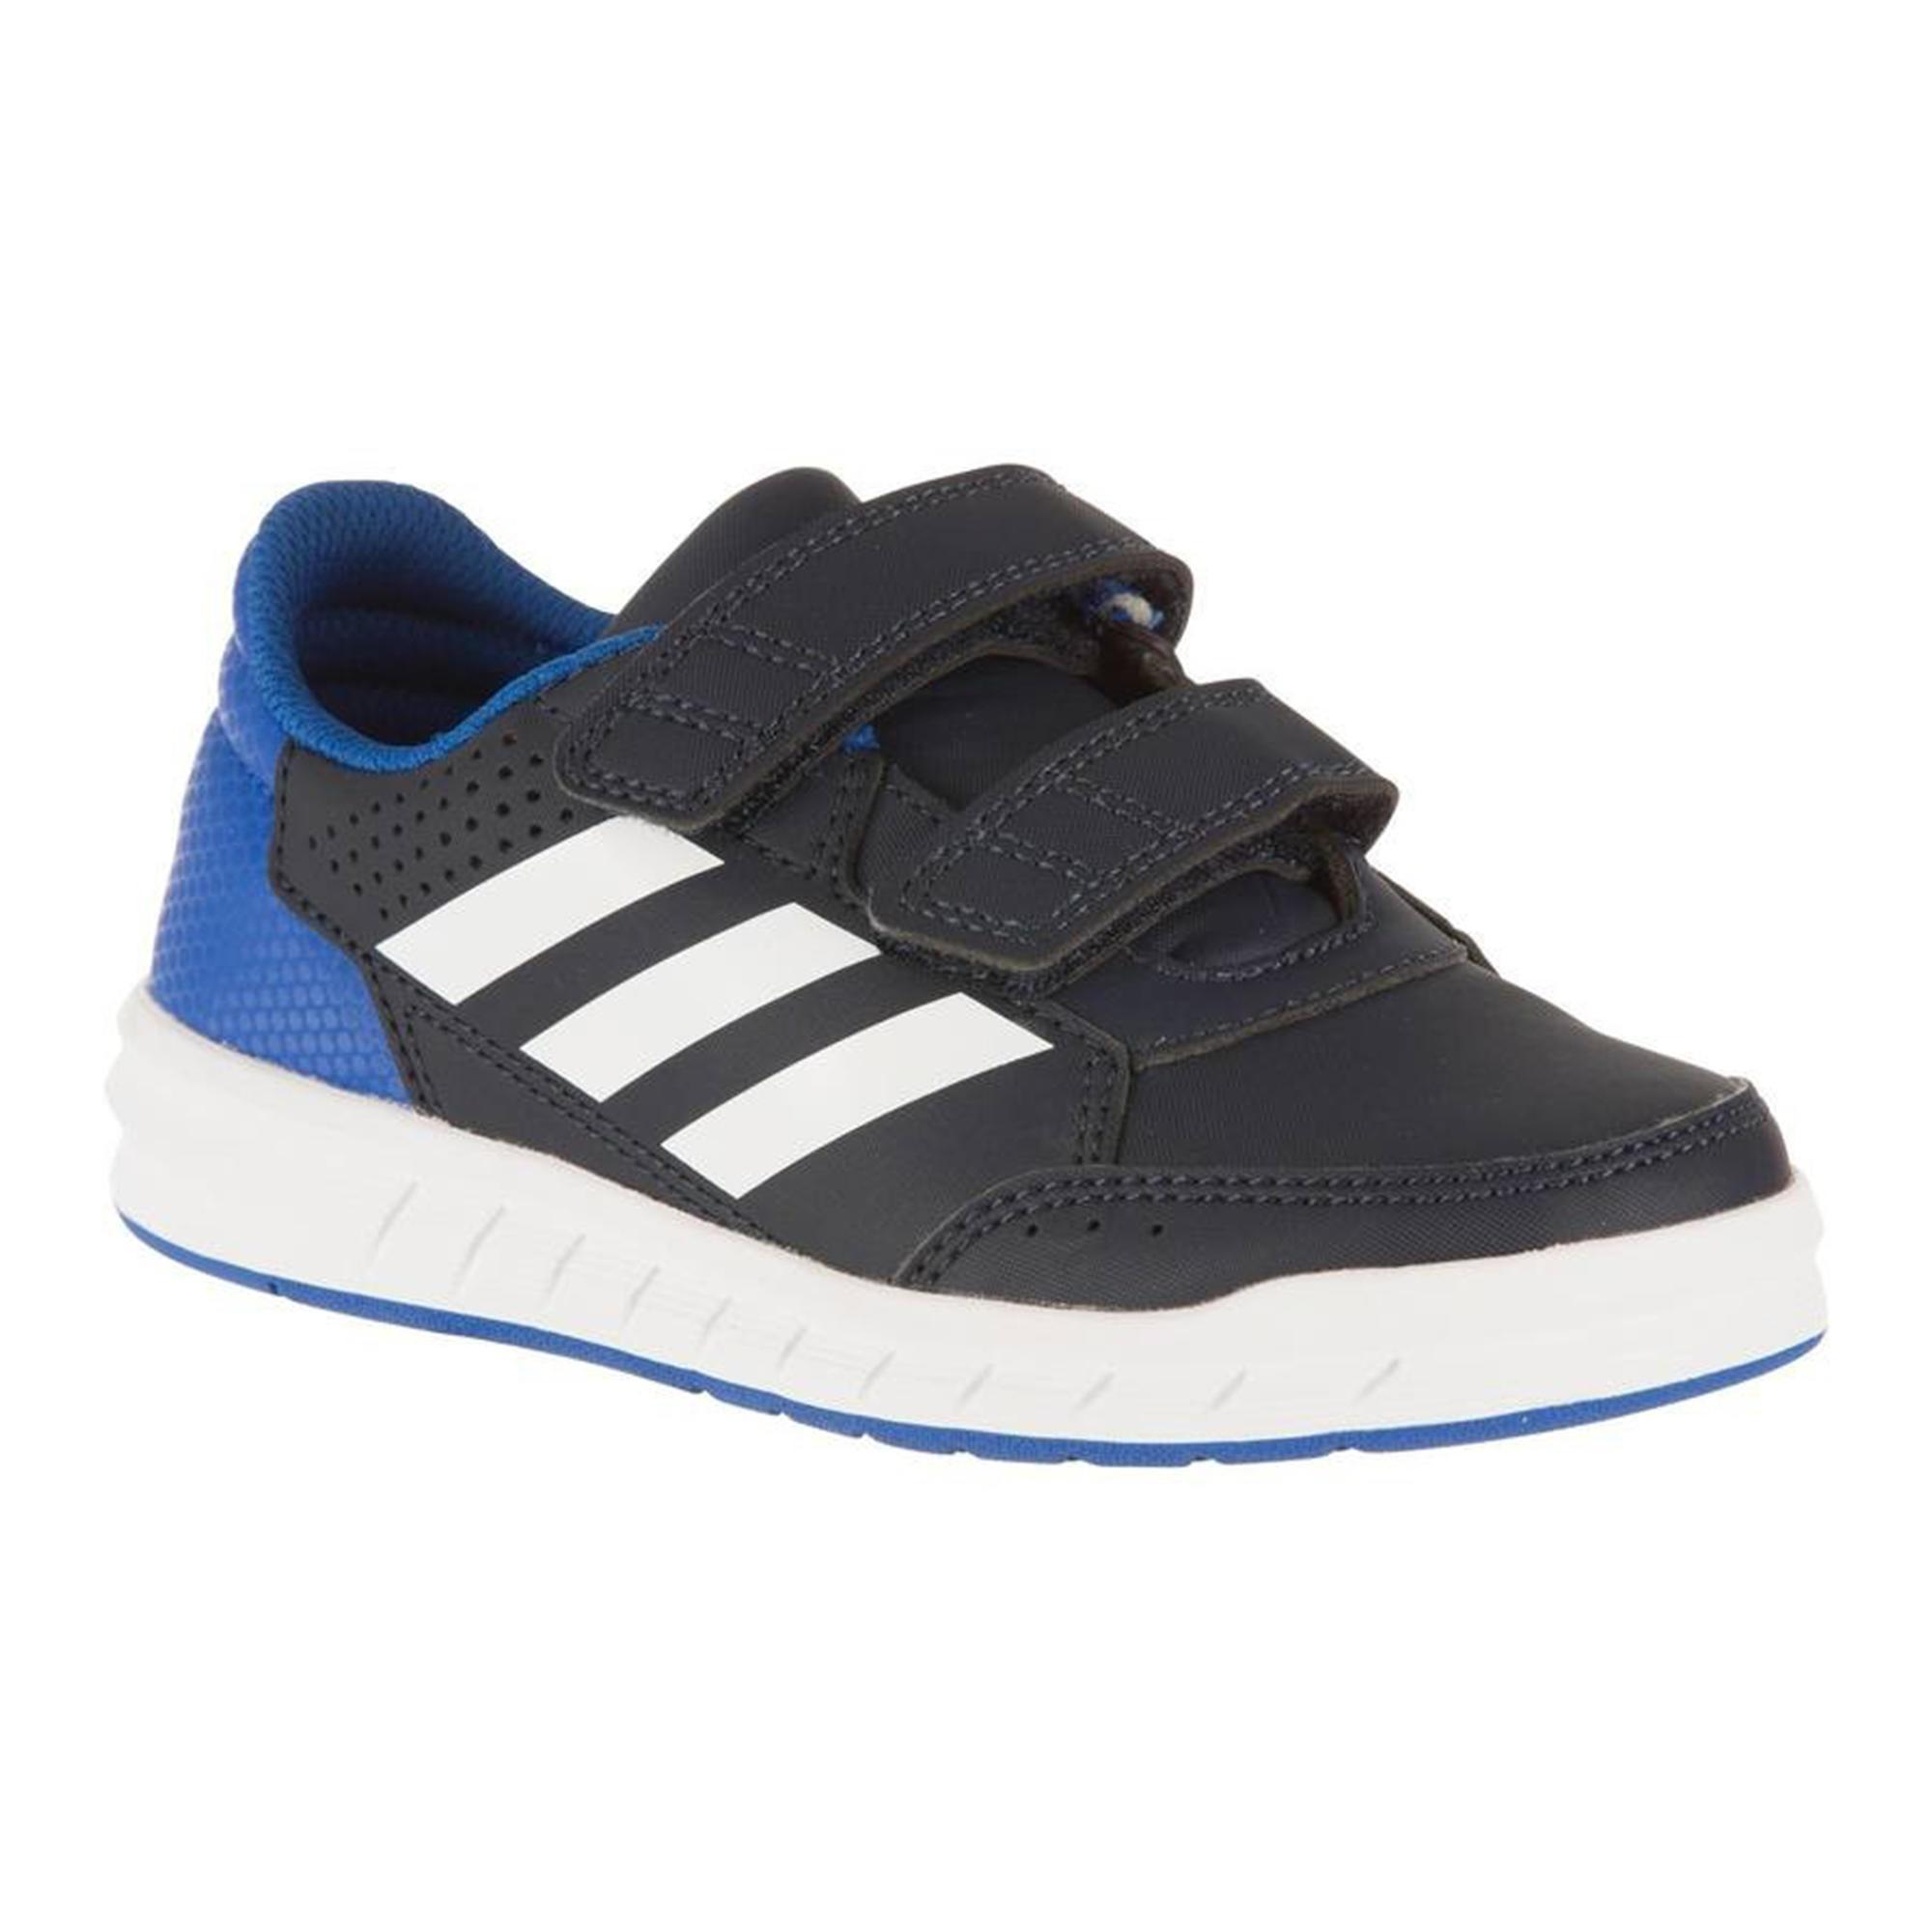 popular stores wholesale huge discount CHAUSSURES DE TENNIS ENFANT ADIDAS ALTASPORT BLEU